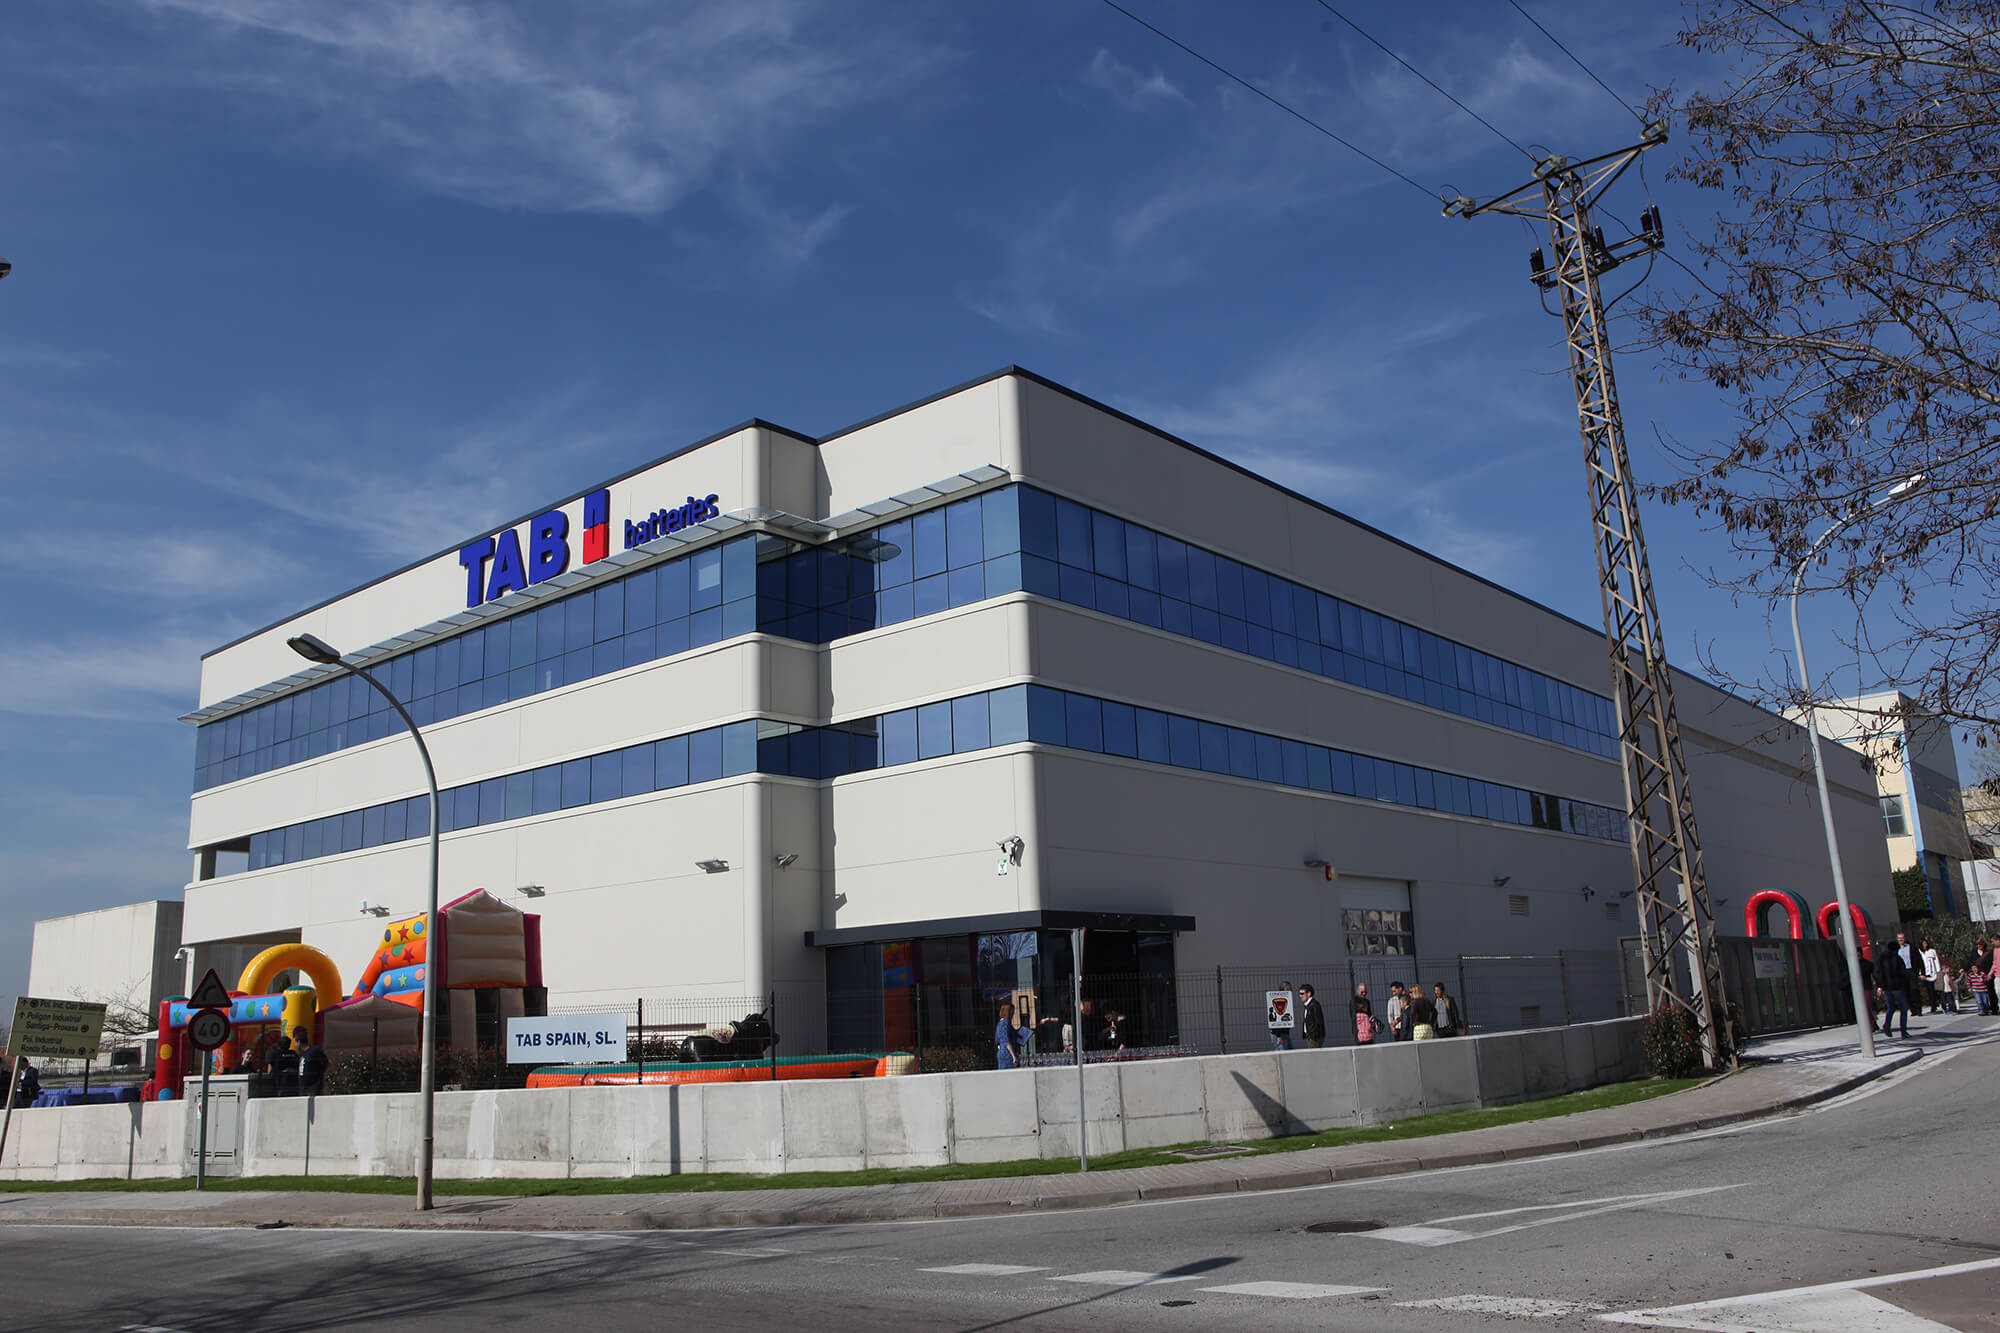 TAB SPAIN – GRAND OPENING OF NEW BUSINESS FACILITIES